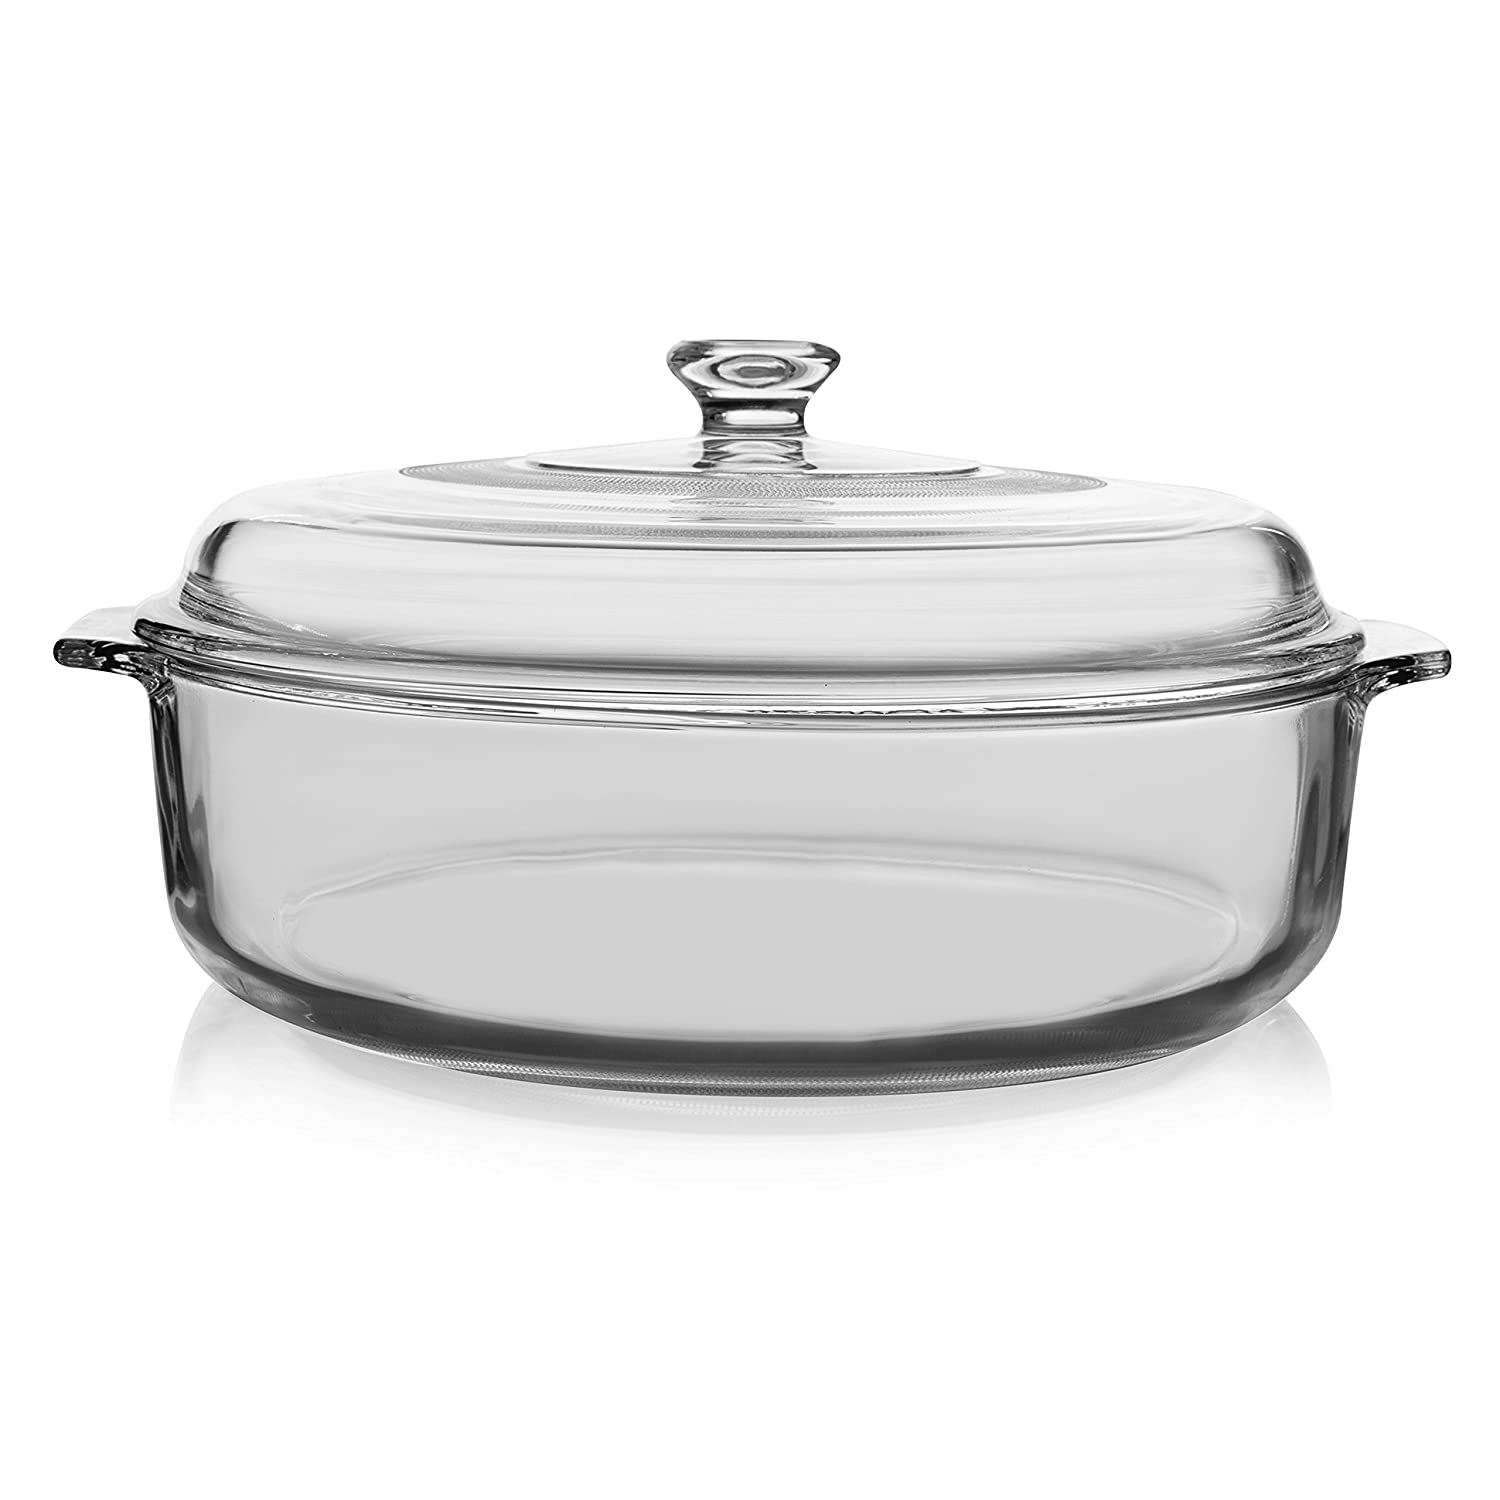 3-quart Manufactured by Libbey with minimally sourced accessories 55952 Libbey Bakers Basics Glass Casserole Dish with Cover